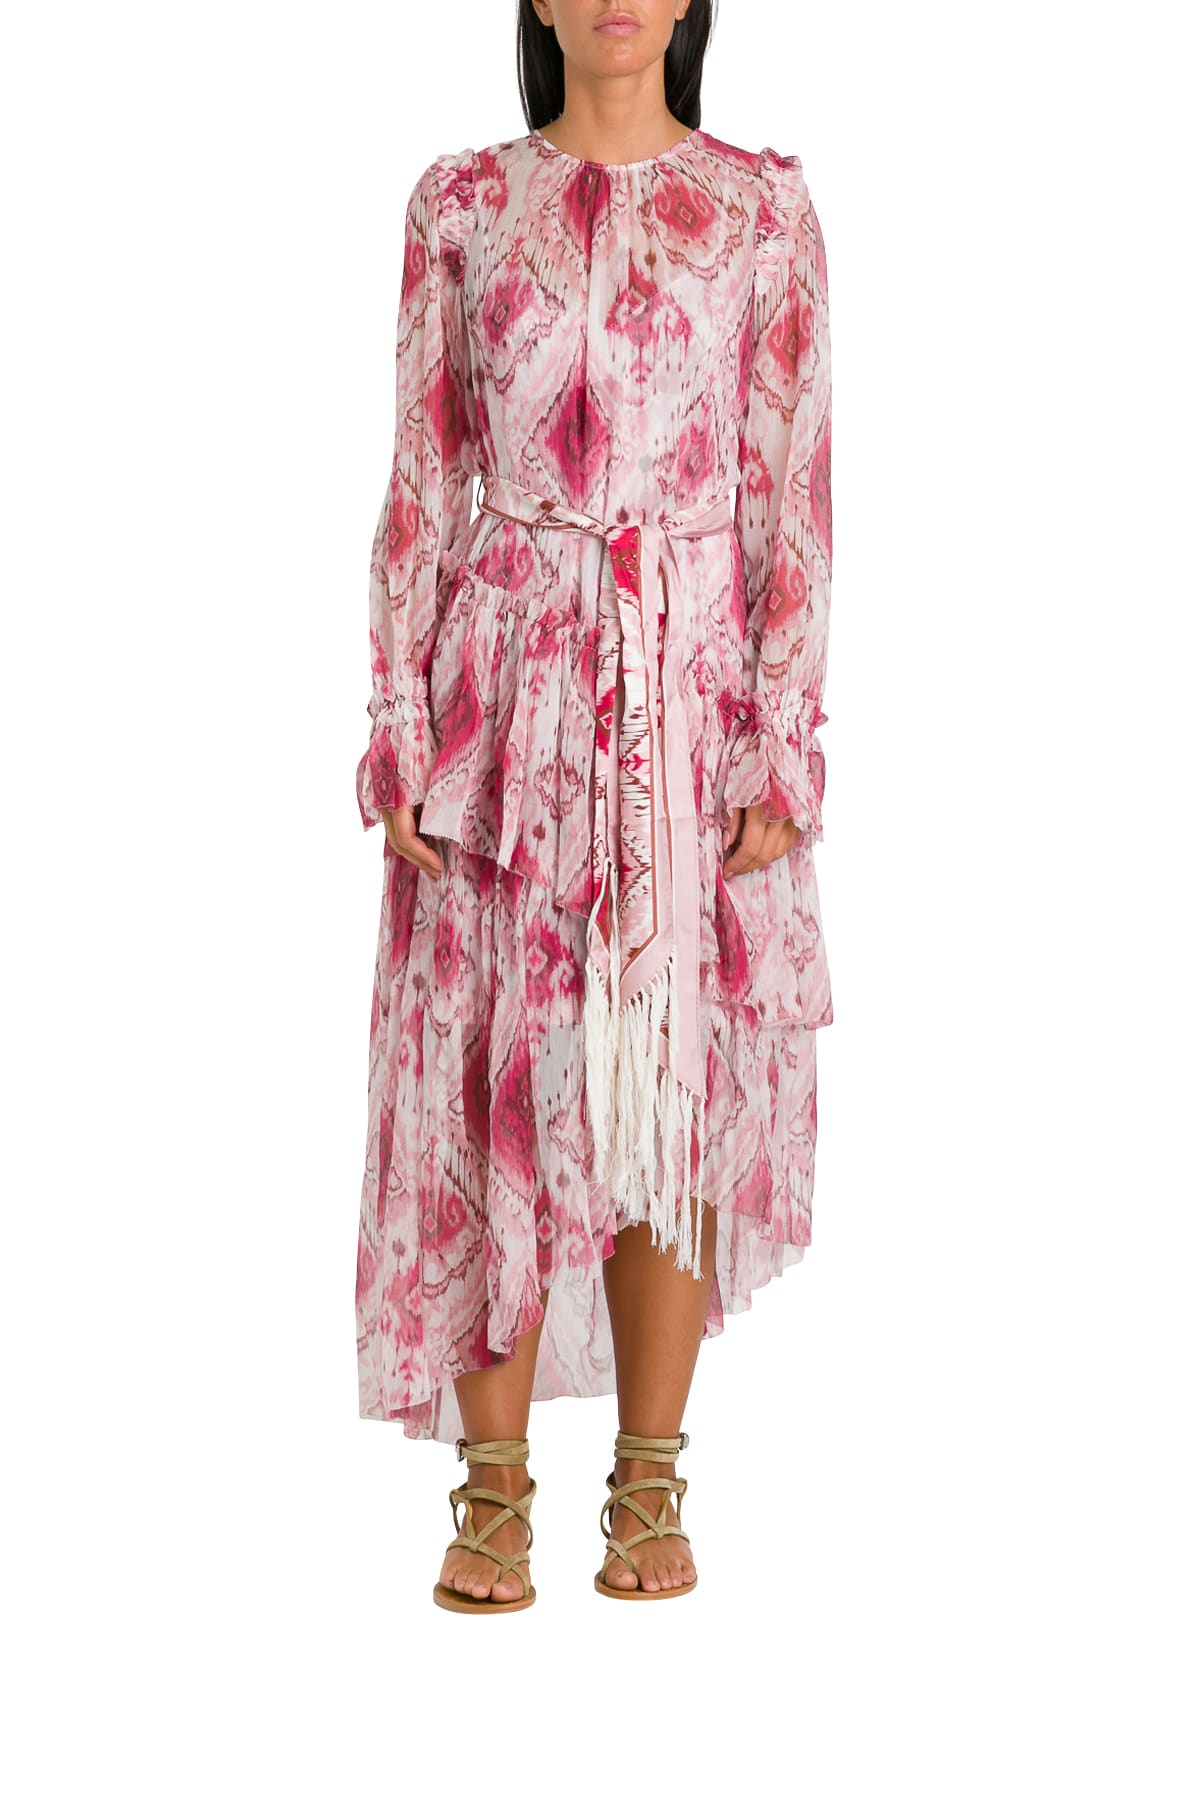 Buy Zimmermann Wavelength Asymmetric Dress online, shop Zimmermann with free shipping